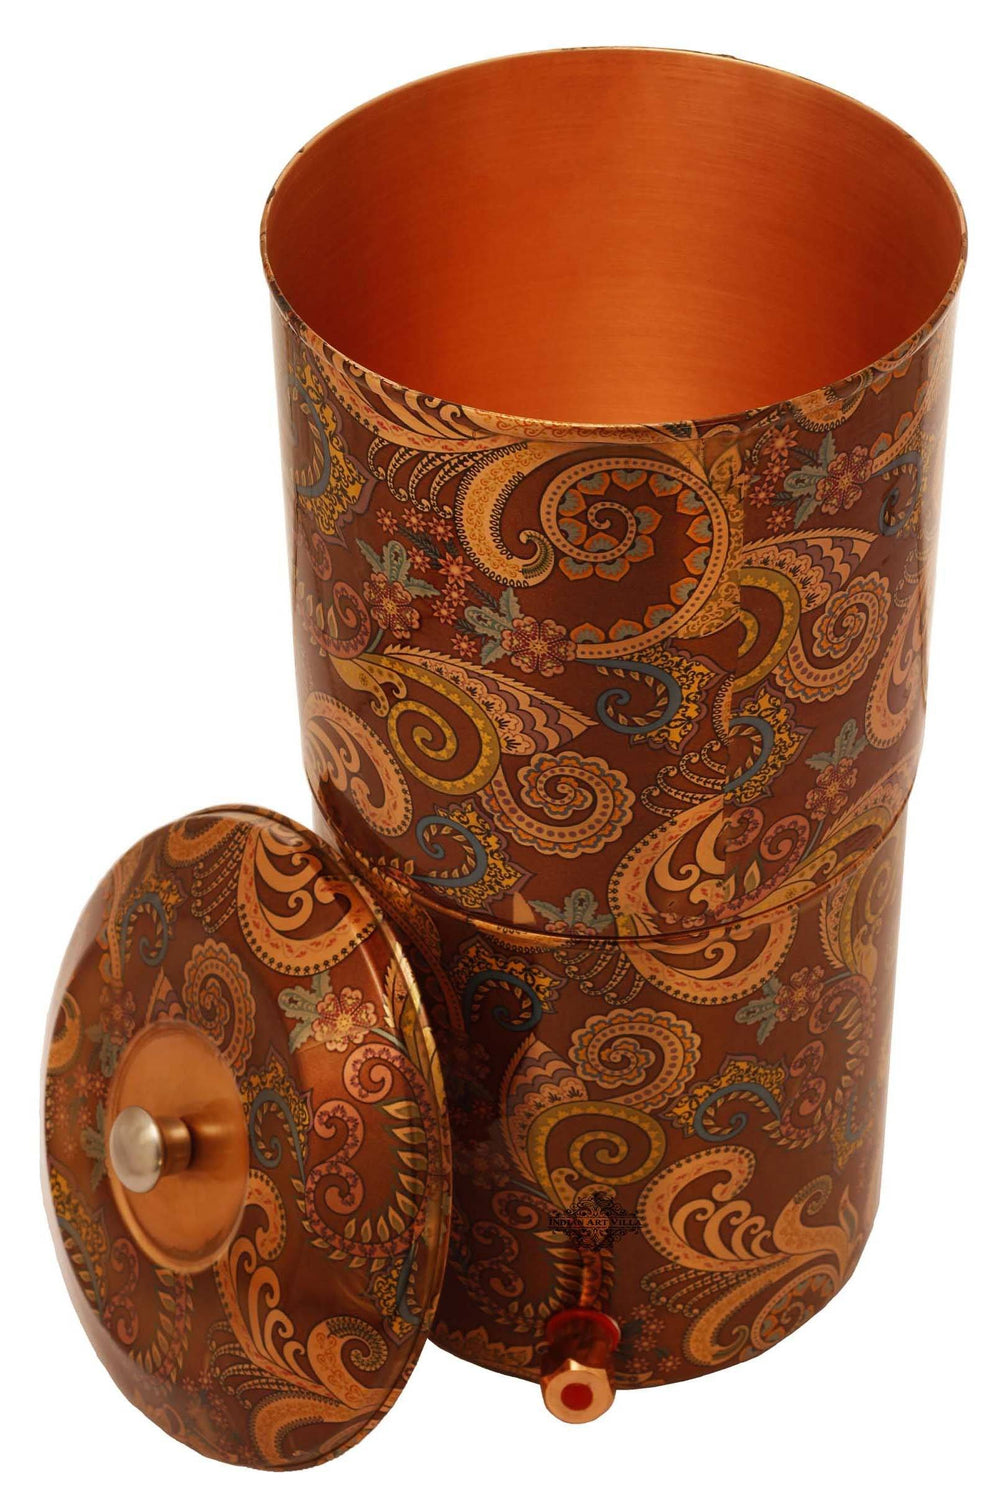 Copper Printed Paisley Design Brown Double Filter Water Pot 439 Water Pots IAV-CC-37-104-13